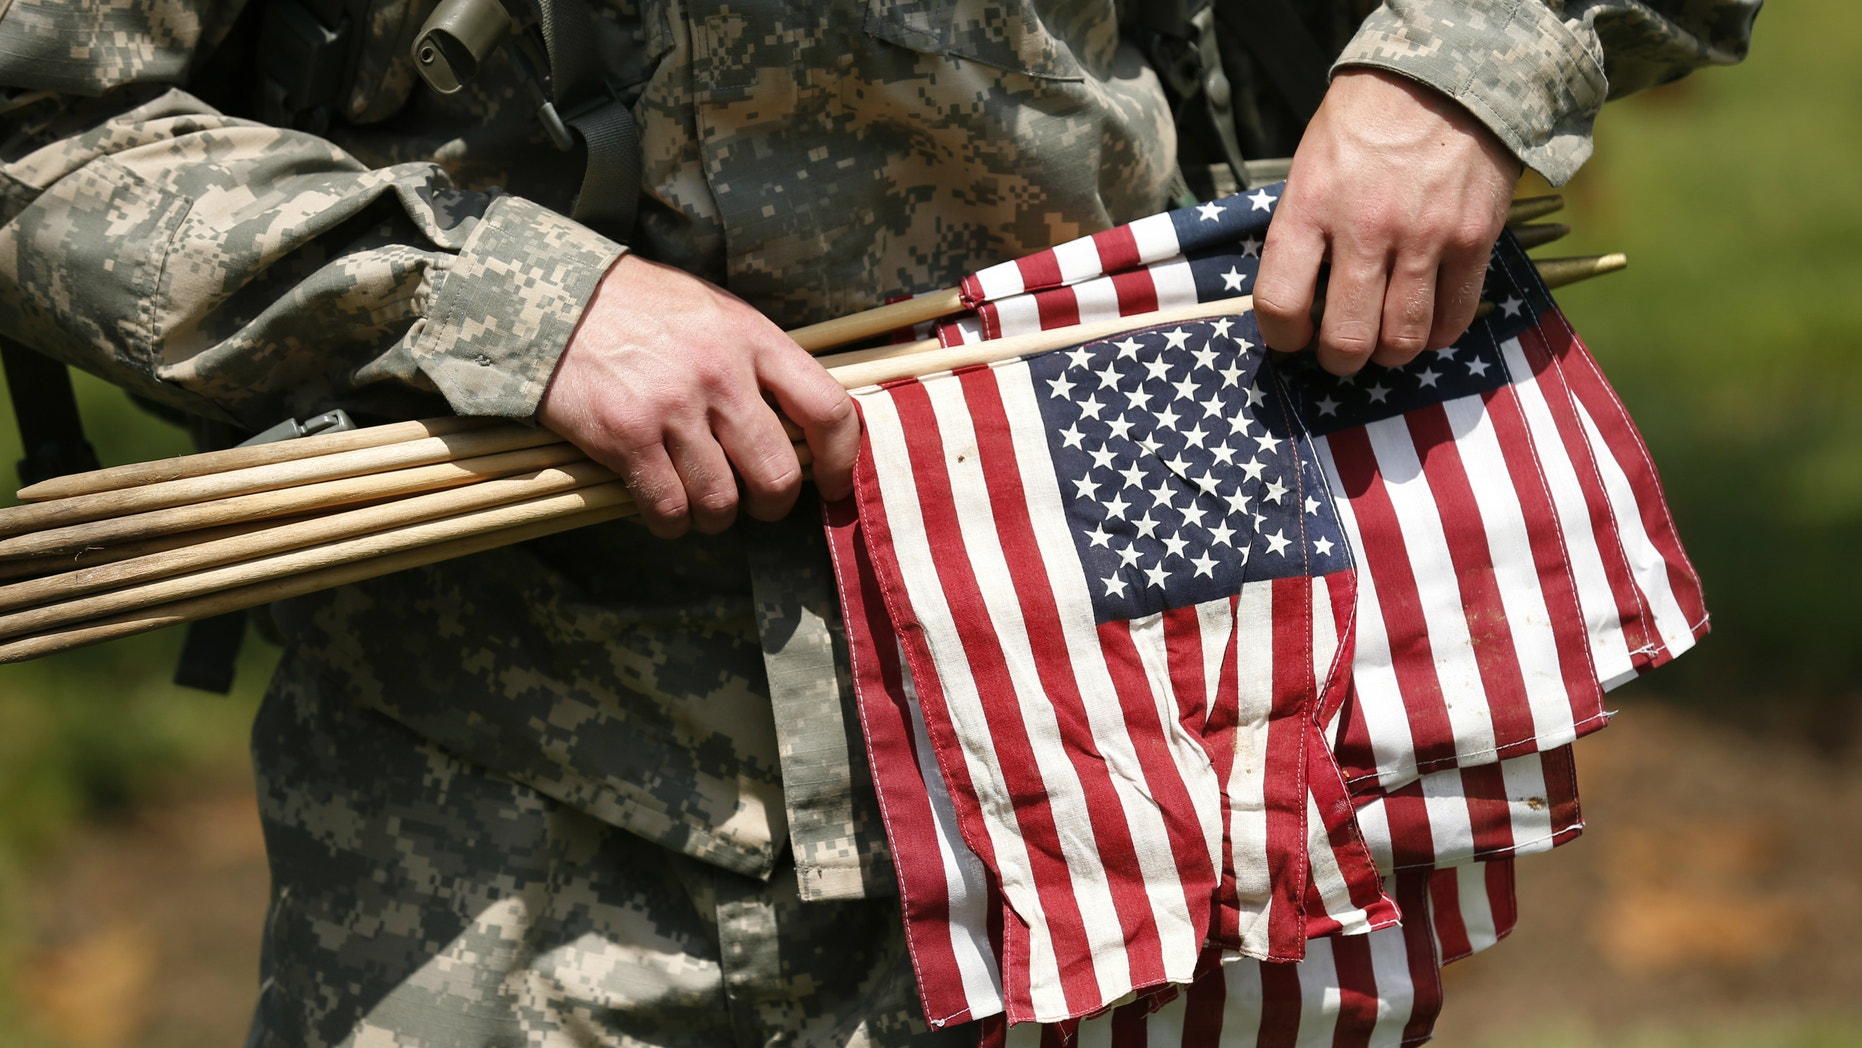 """A member of the Third U.S. Infantry Regiment (The Old Guard) carries flags during a """"Flags-In"""" ceremony at Arlington National Cemetery in Washington."""